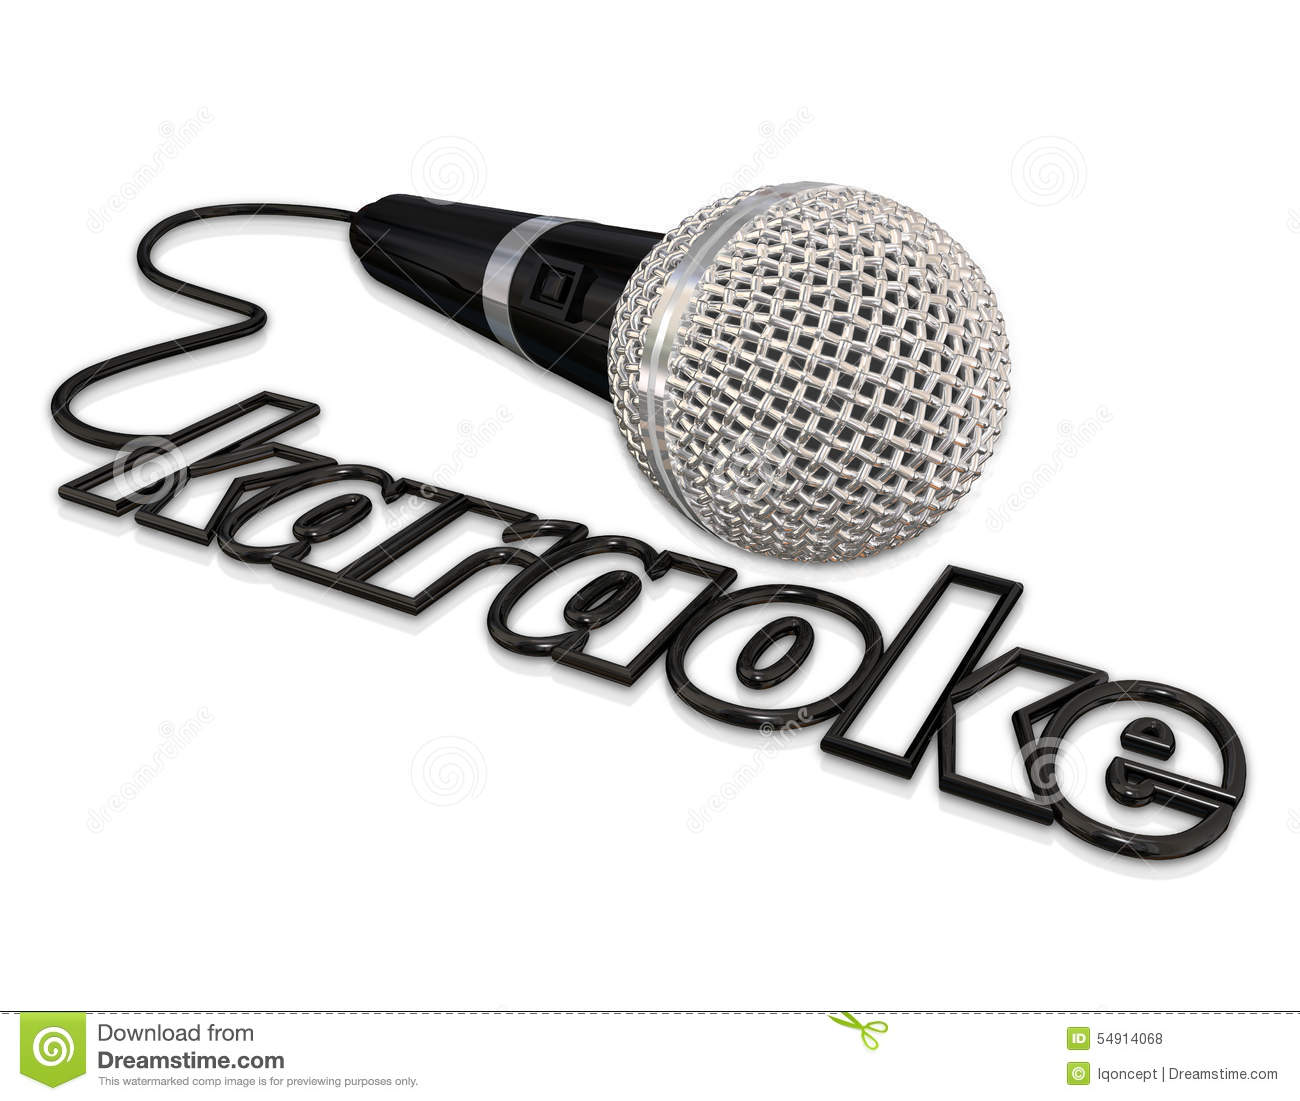 Karaoke Microphone Singing Fun Entertainment Event Stock